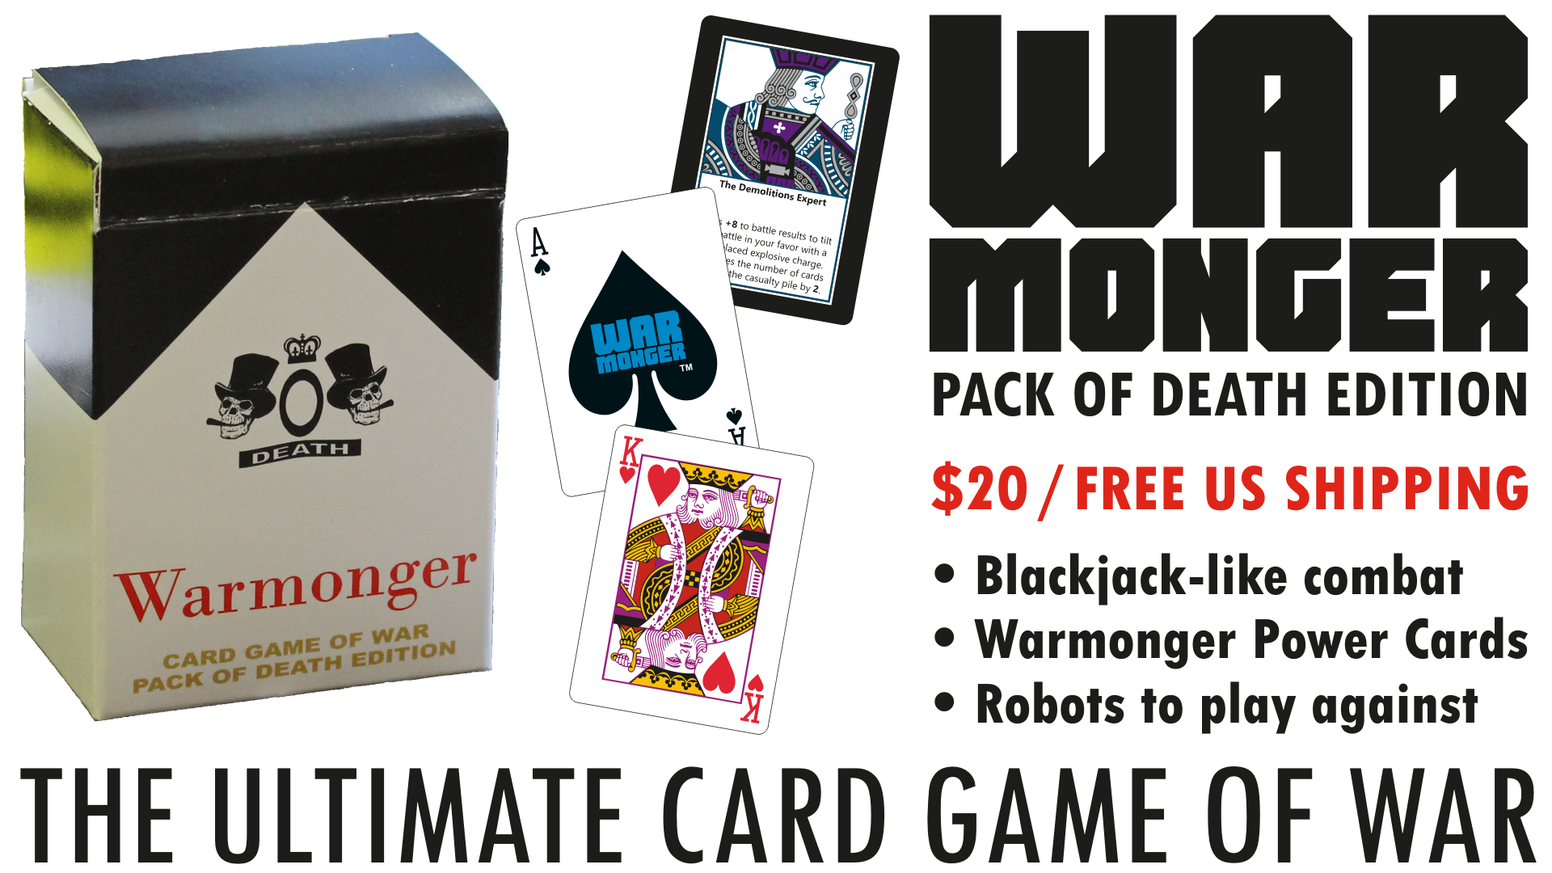 War with playing cards: improved with a Blackjack-like combat system, Warmonger power cards and Robot players so you can play solo.